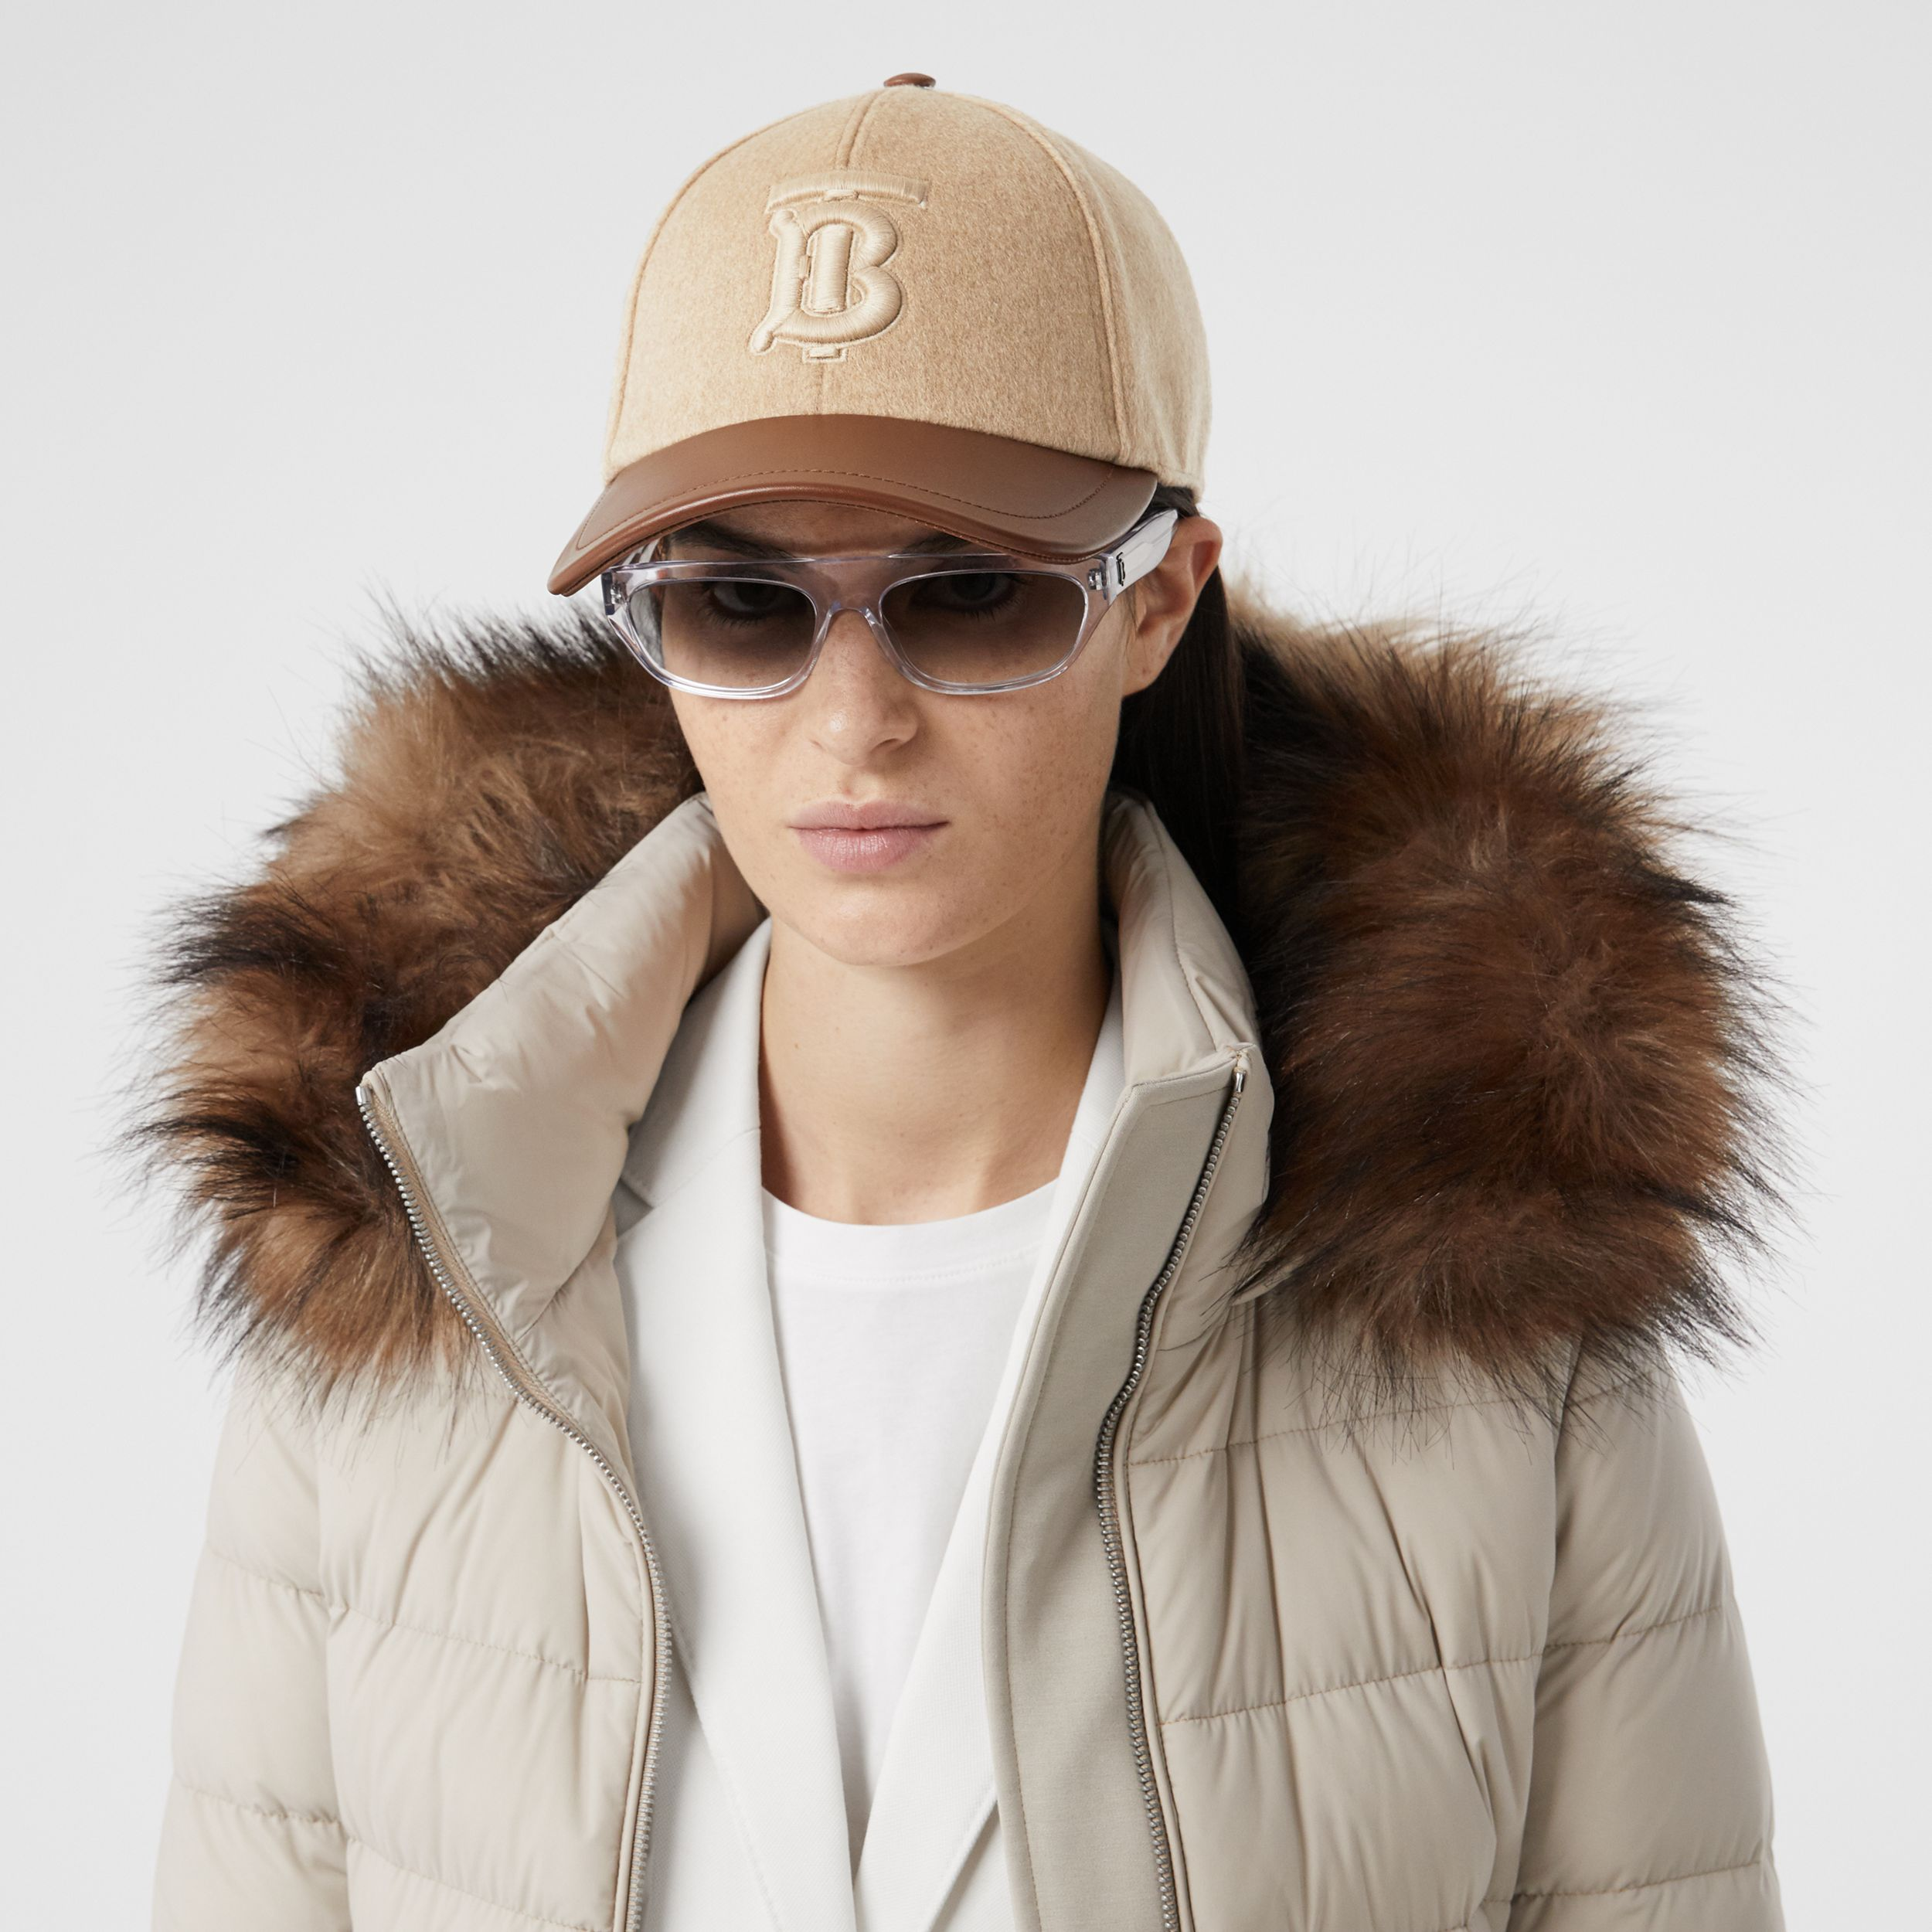 Monogram Motif Cashmere and Leather Baseball Cap in Camel | Burberry - 3